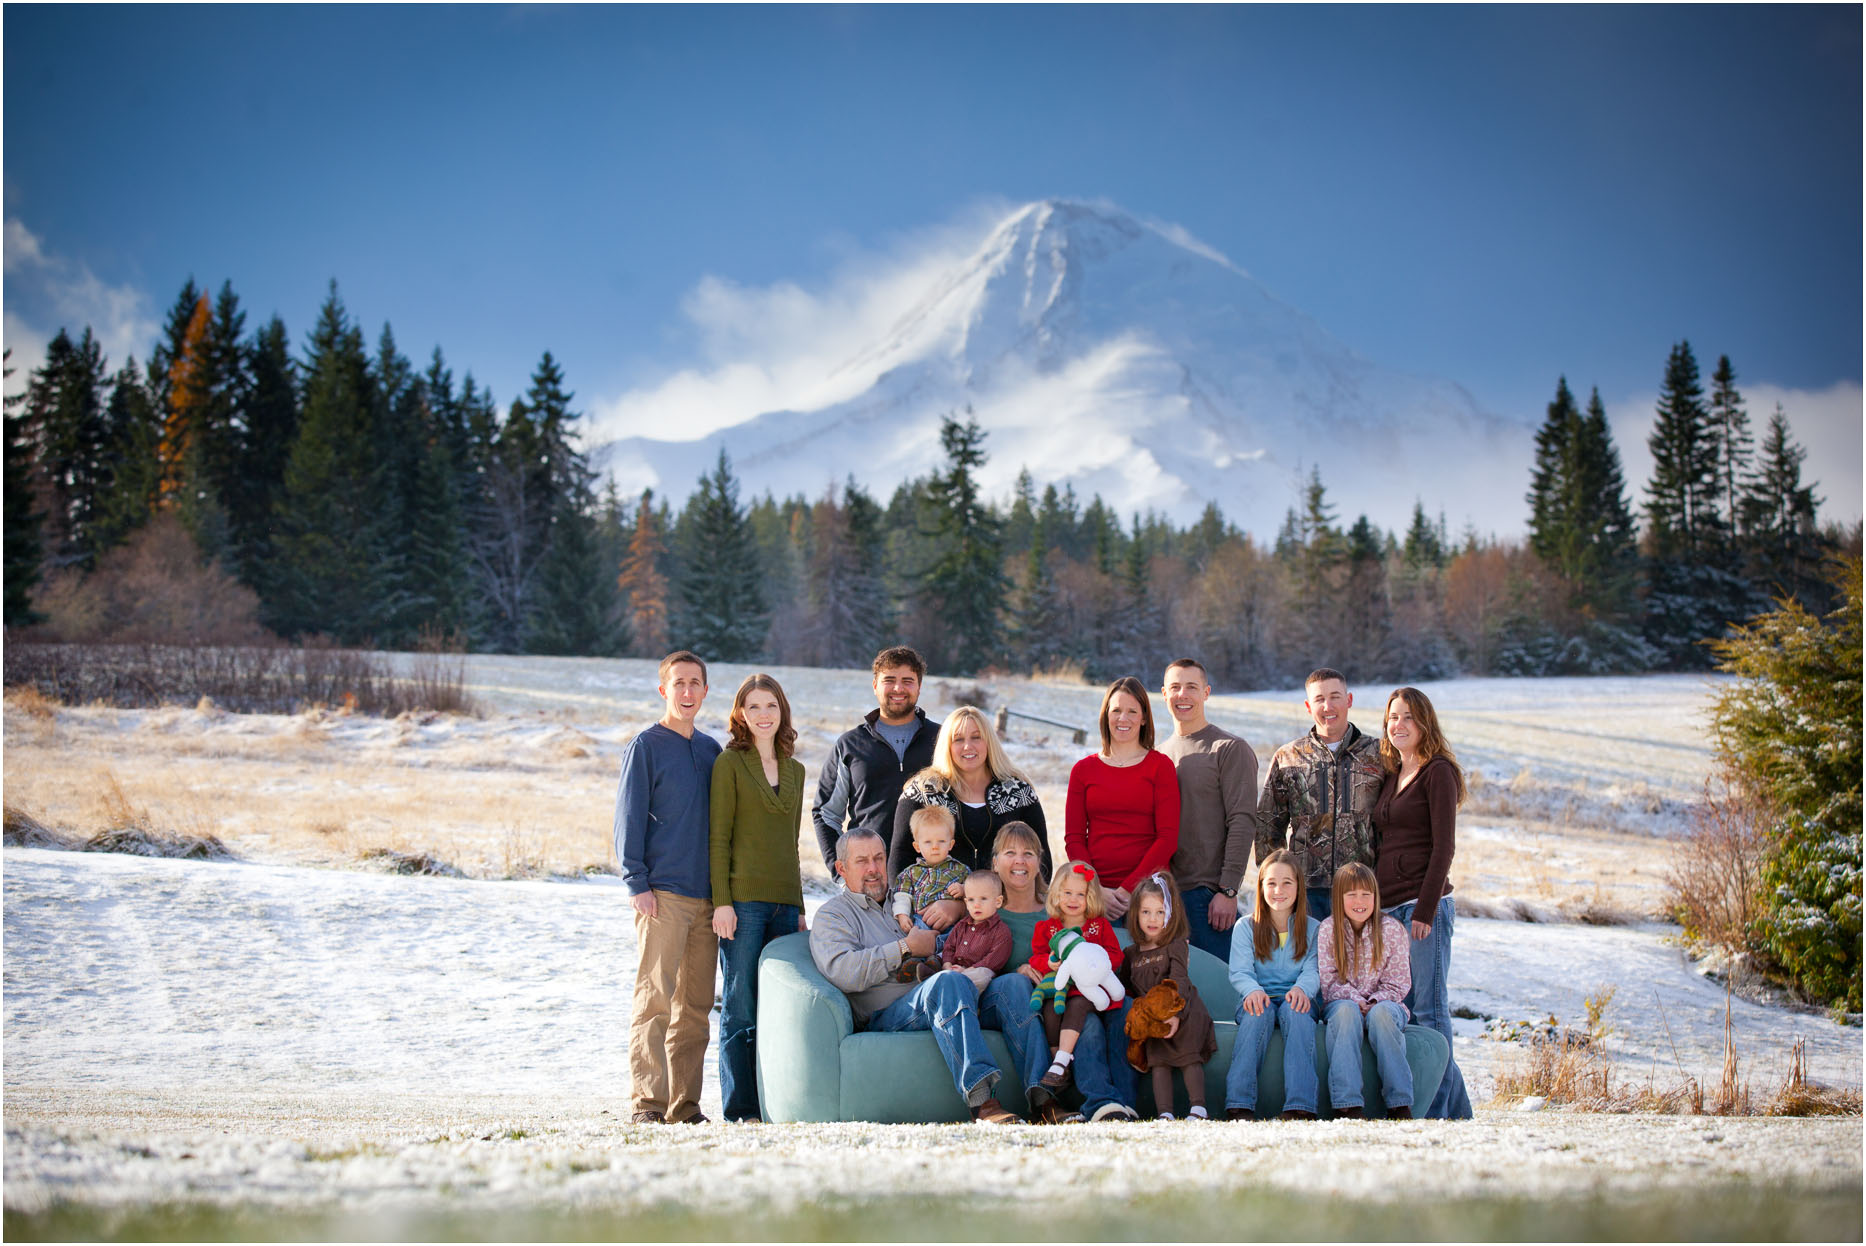 36-family-couples-blainebethanyphotography-DUP5.jpg